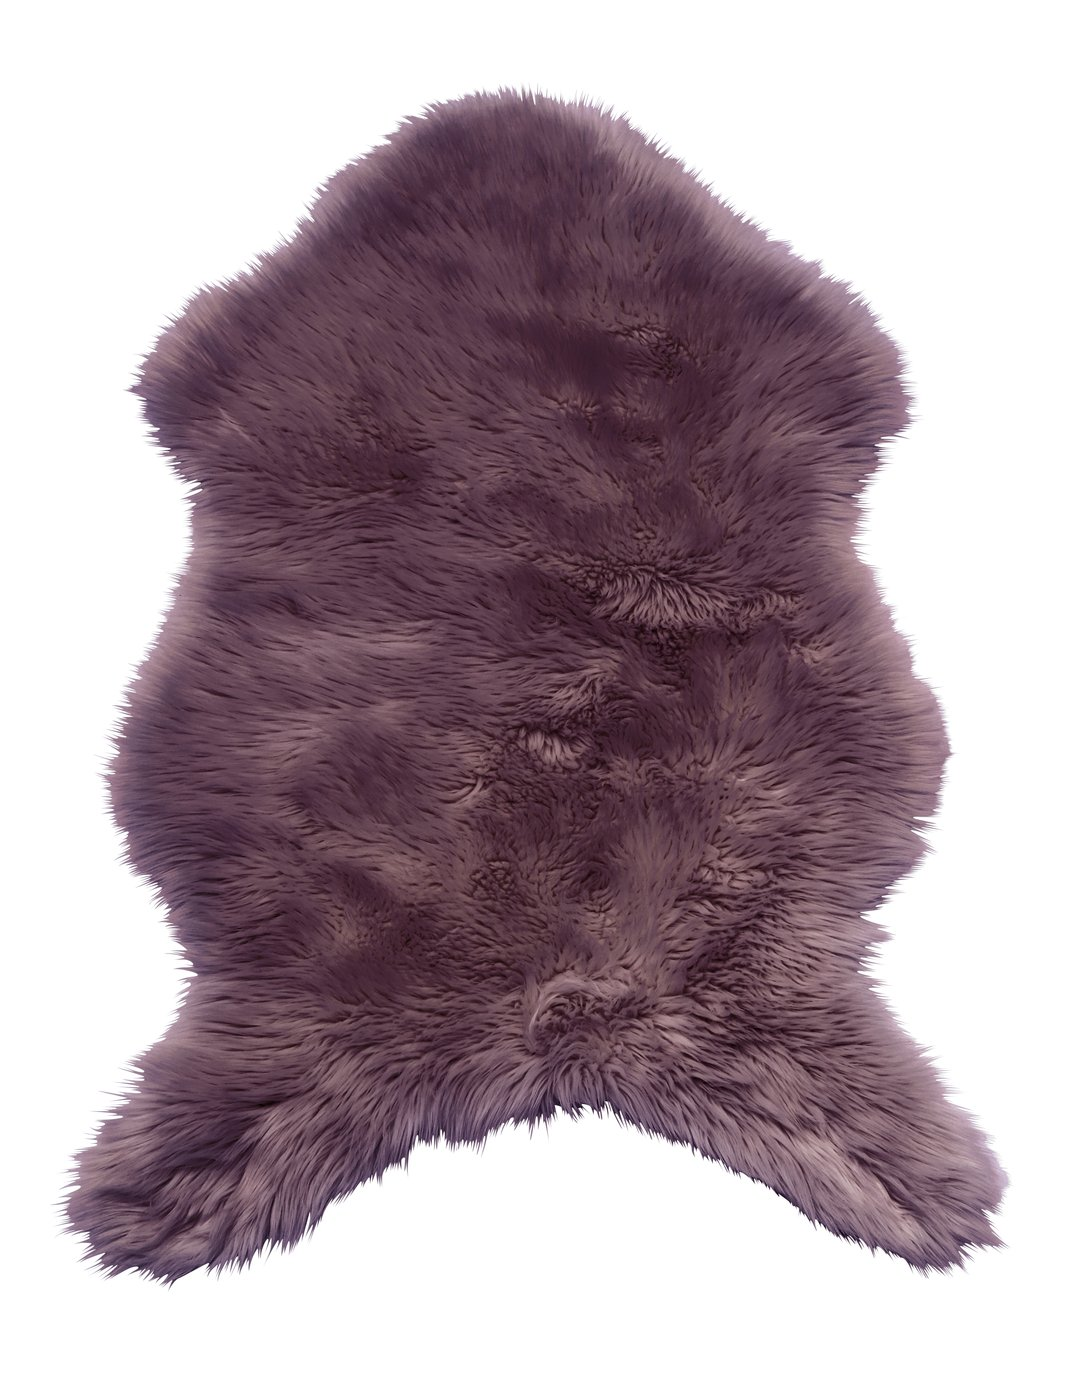 Argos Home Small Faux Sheepskin Rug